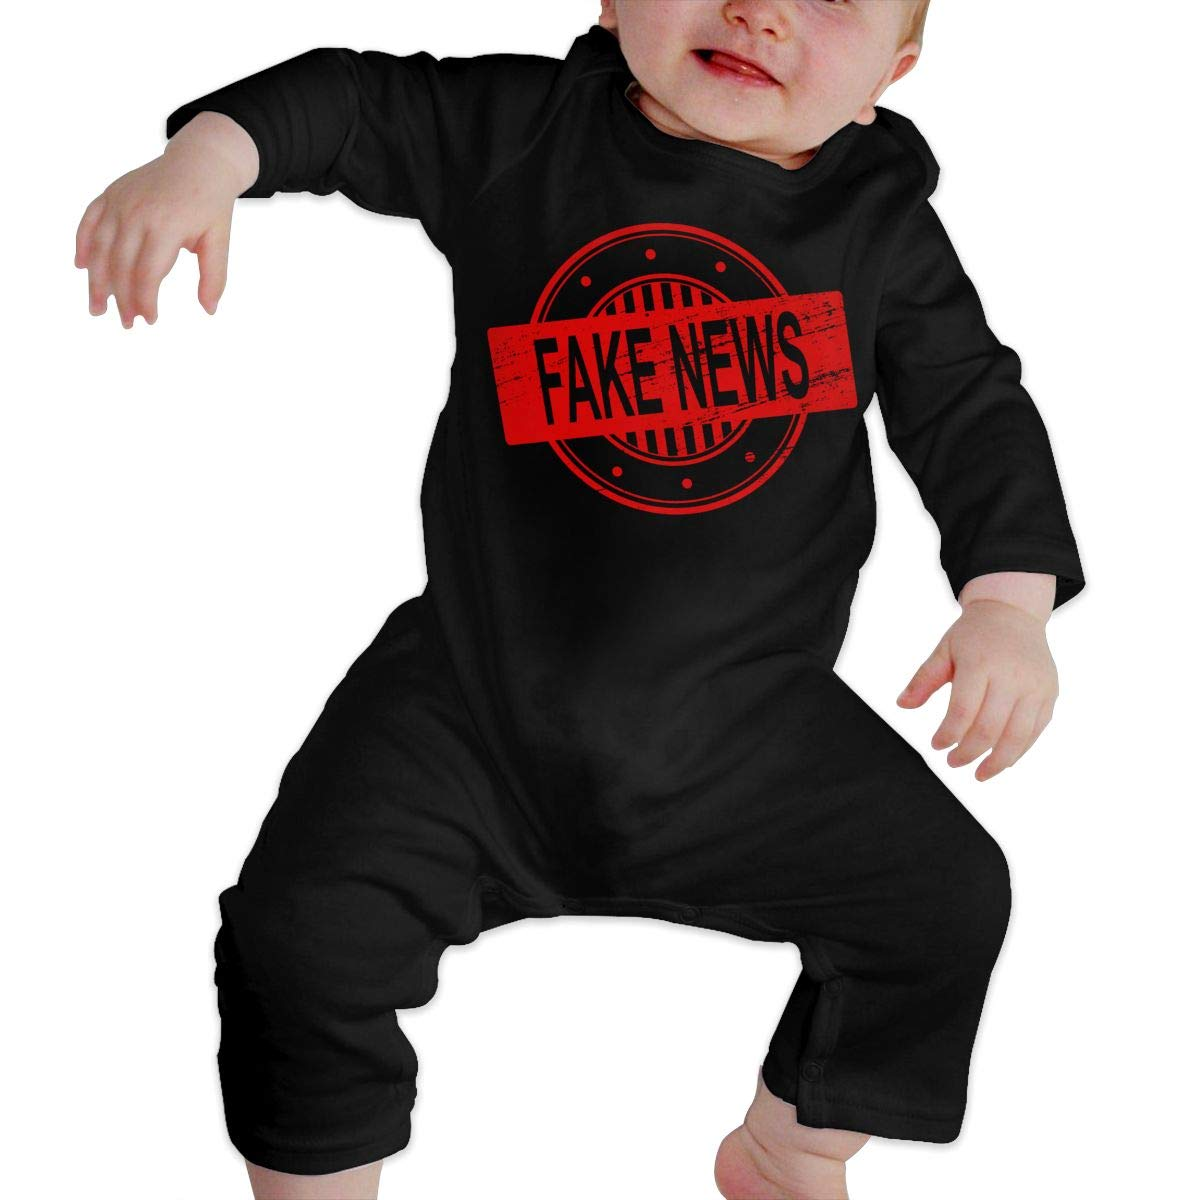 Fake News Romper Jumpsuit Long Sleeve Bodysuit Overalls Outfits Clothes for Newborn Baby Boy Girl